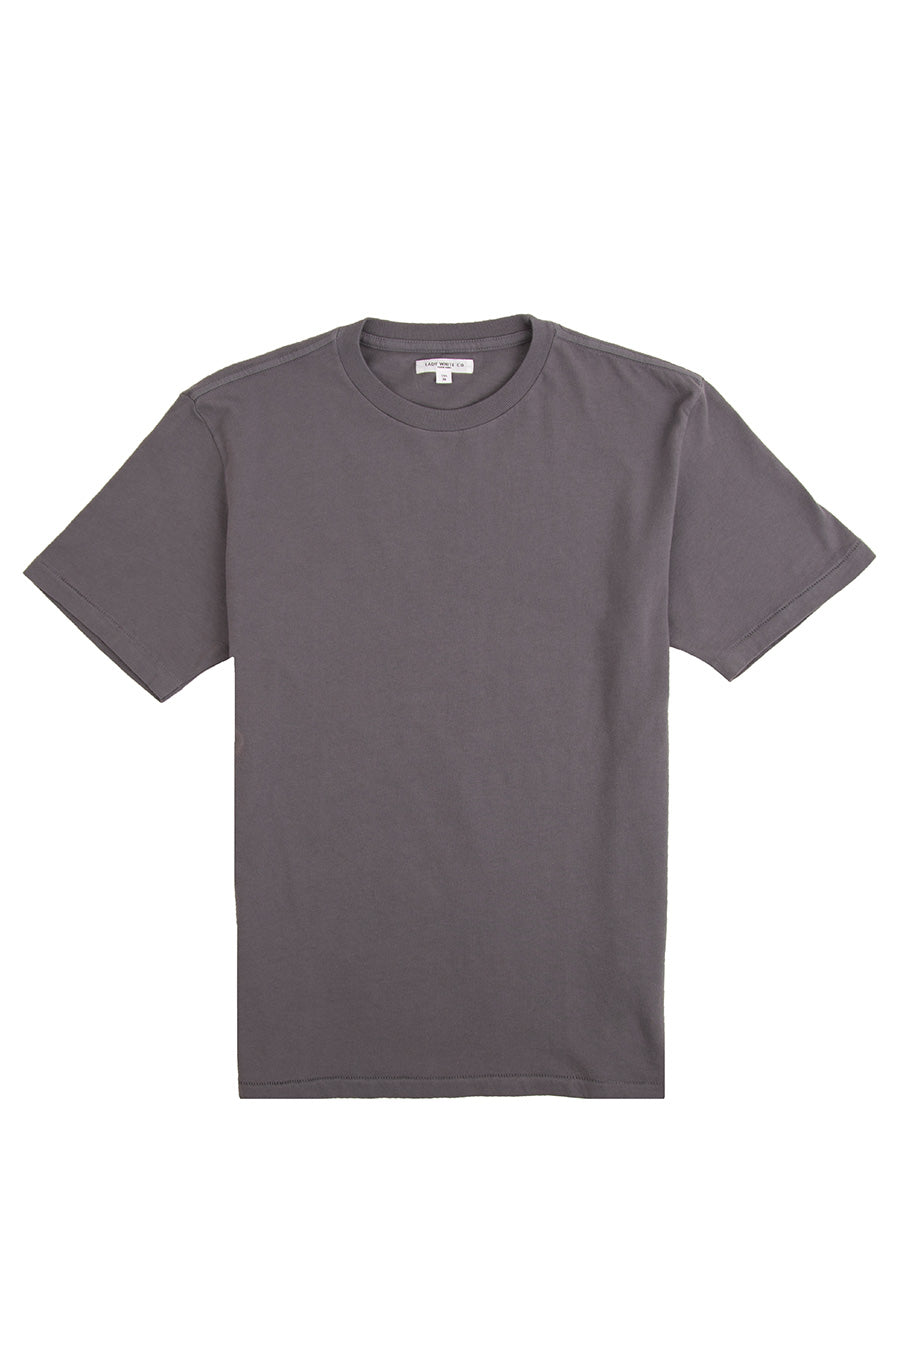 Lady White Co. - Night Grey Lite Jersey T-Shirt | 1032 SPACE